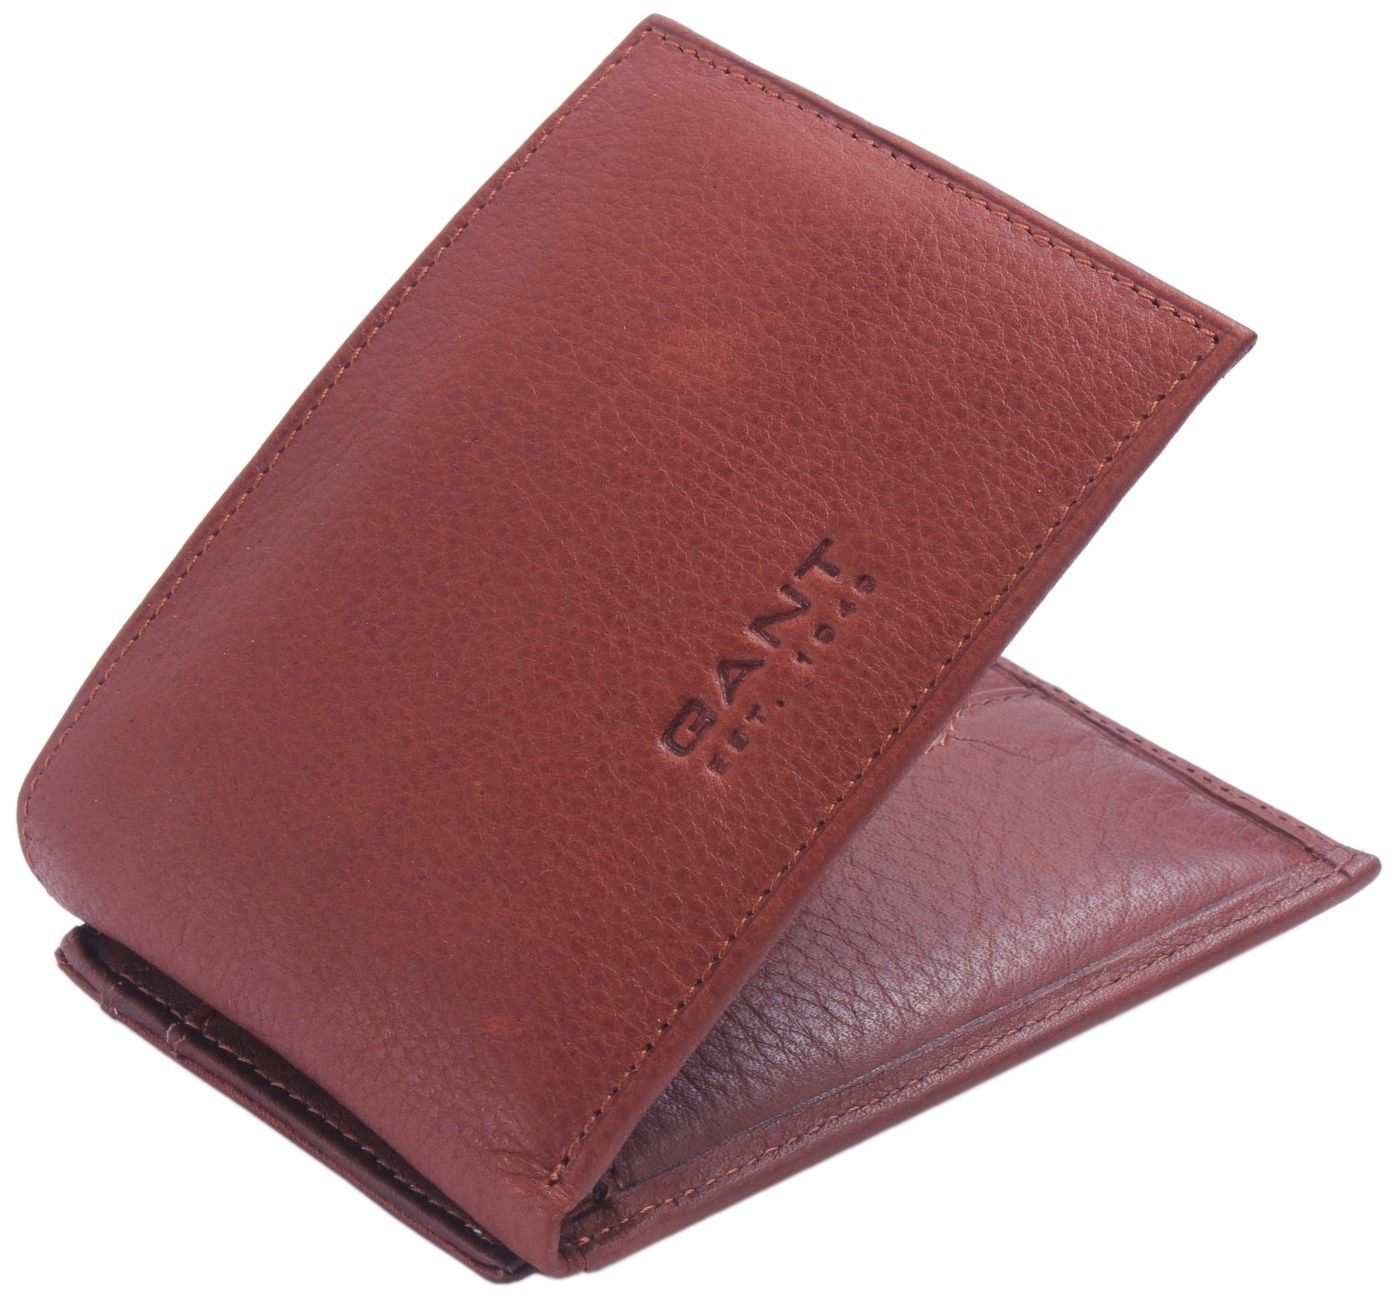 bdb7edca6a Gant Wallet - Brown Leather Wallet and Credit Card Holder #Gant #Mens # Wallet